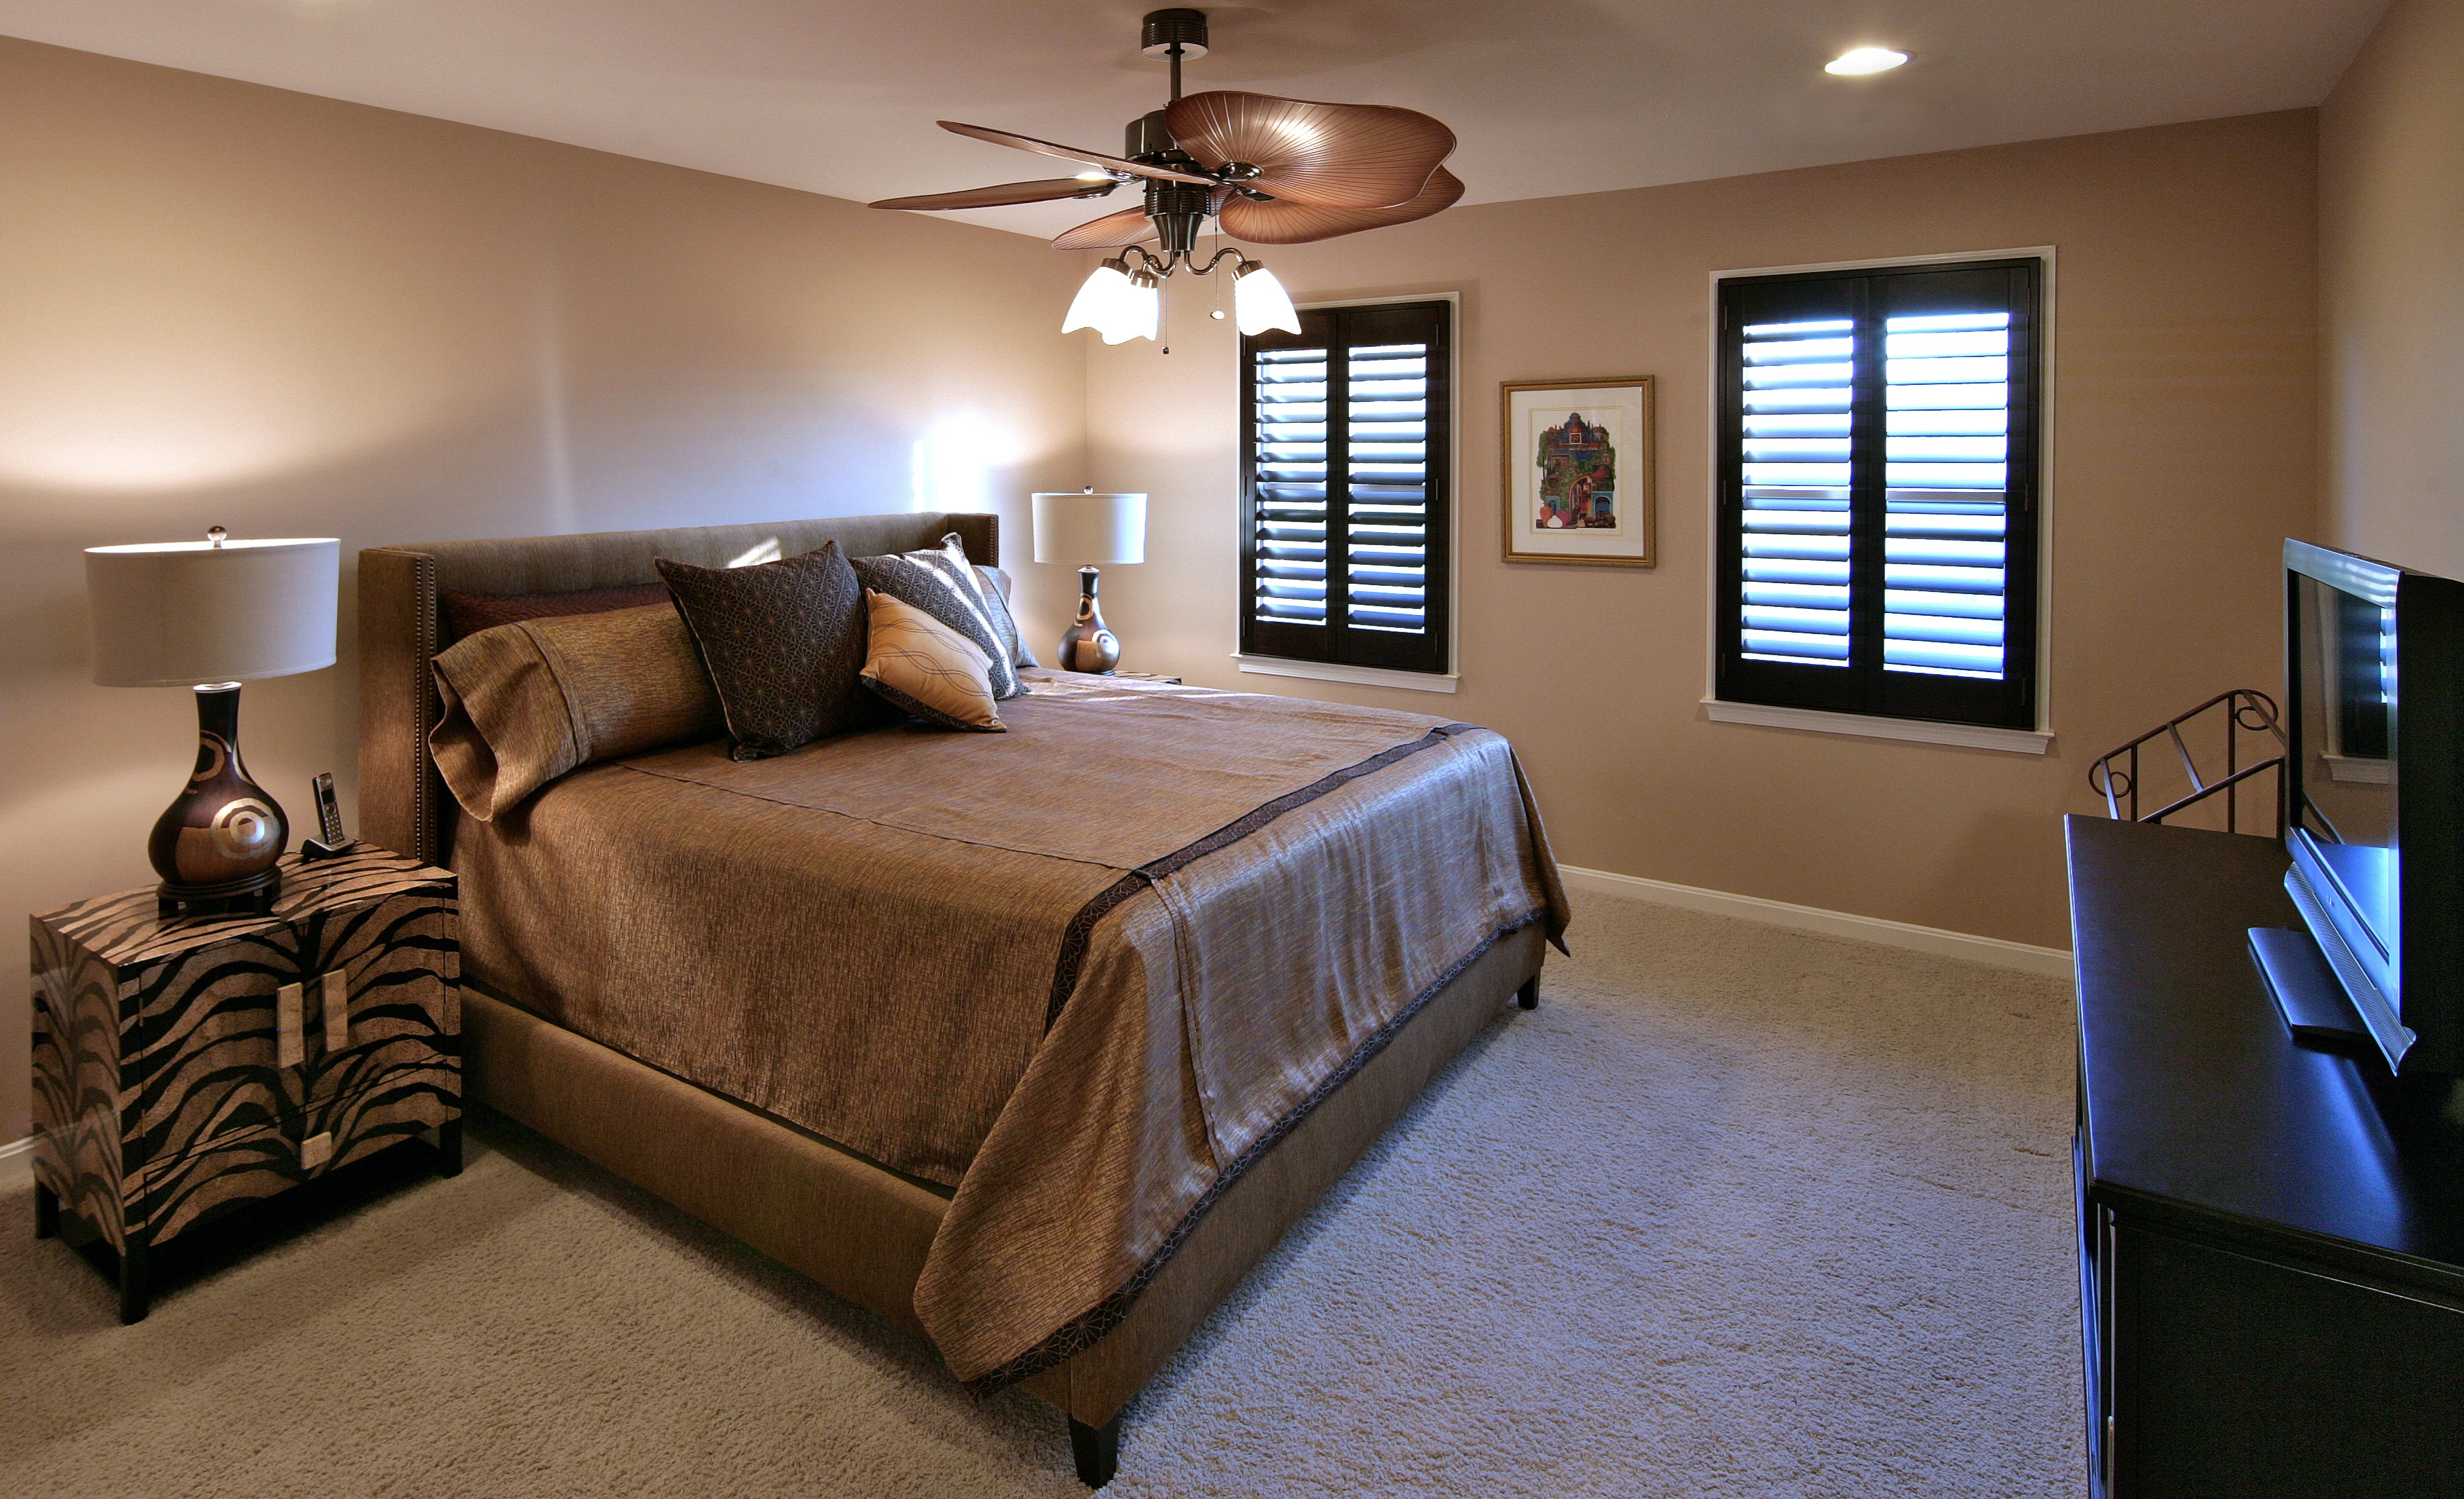 bethesda maryland master suite remodeling 13059 | master bedroom